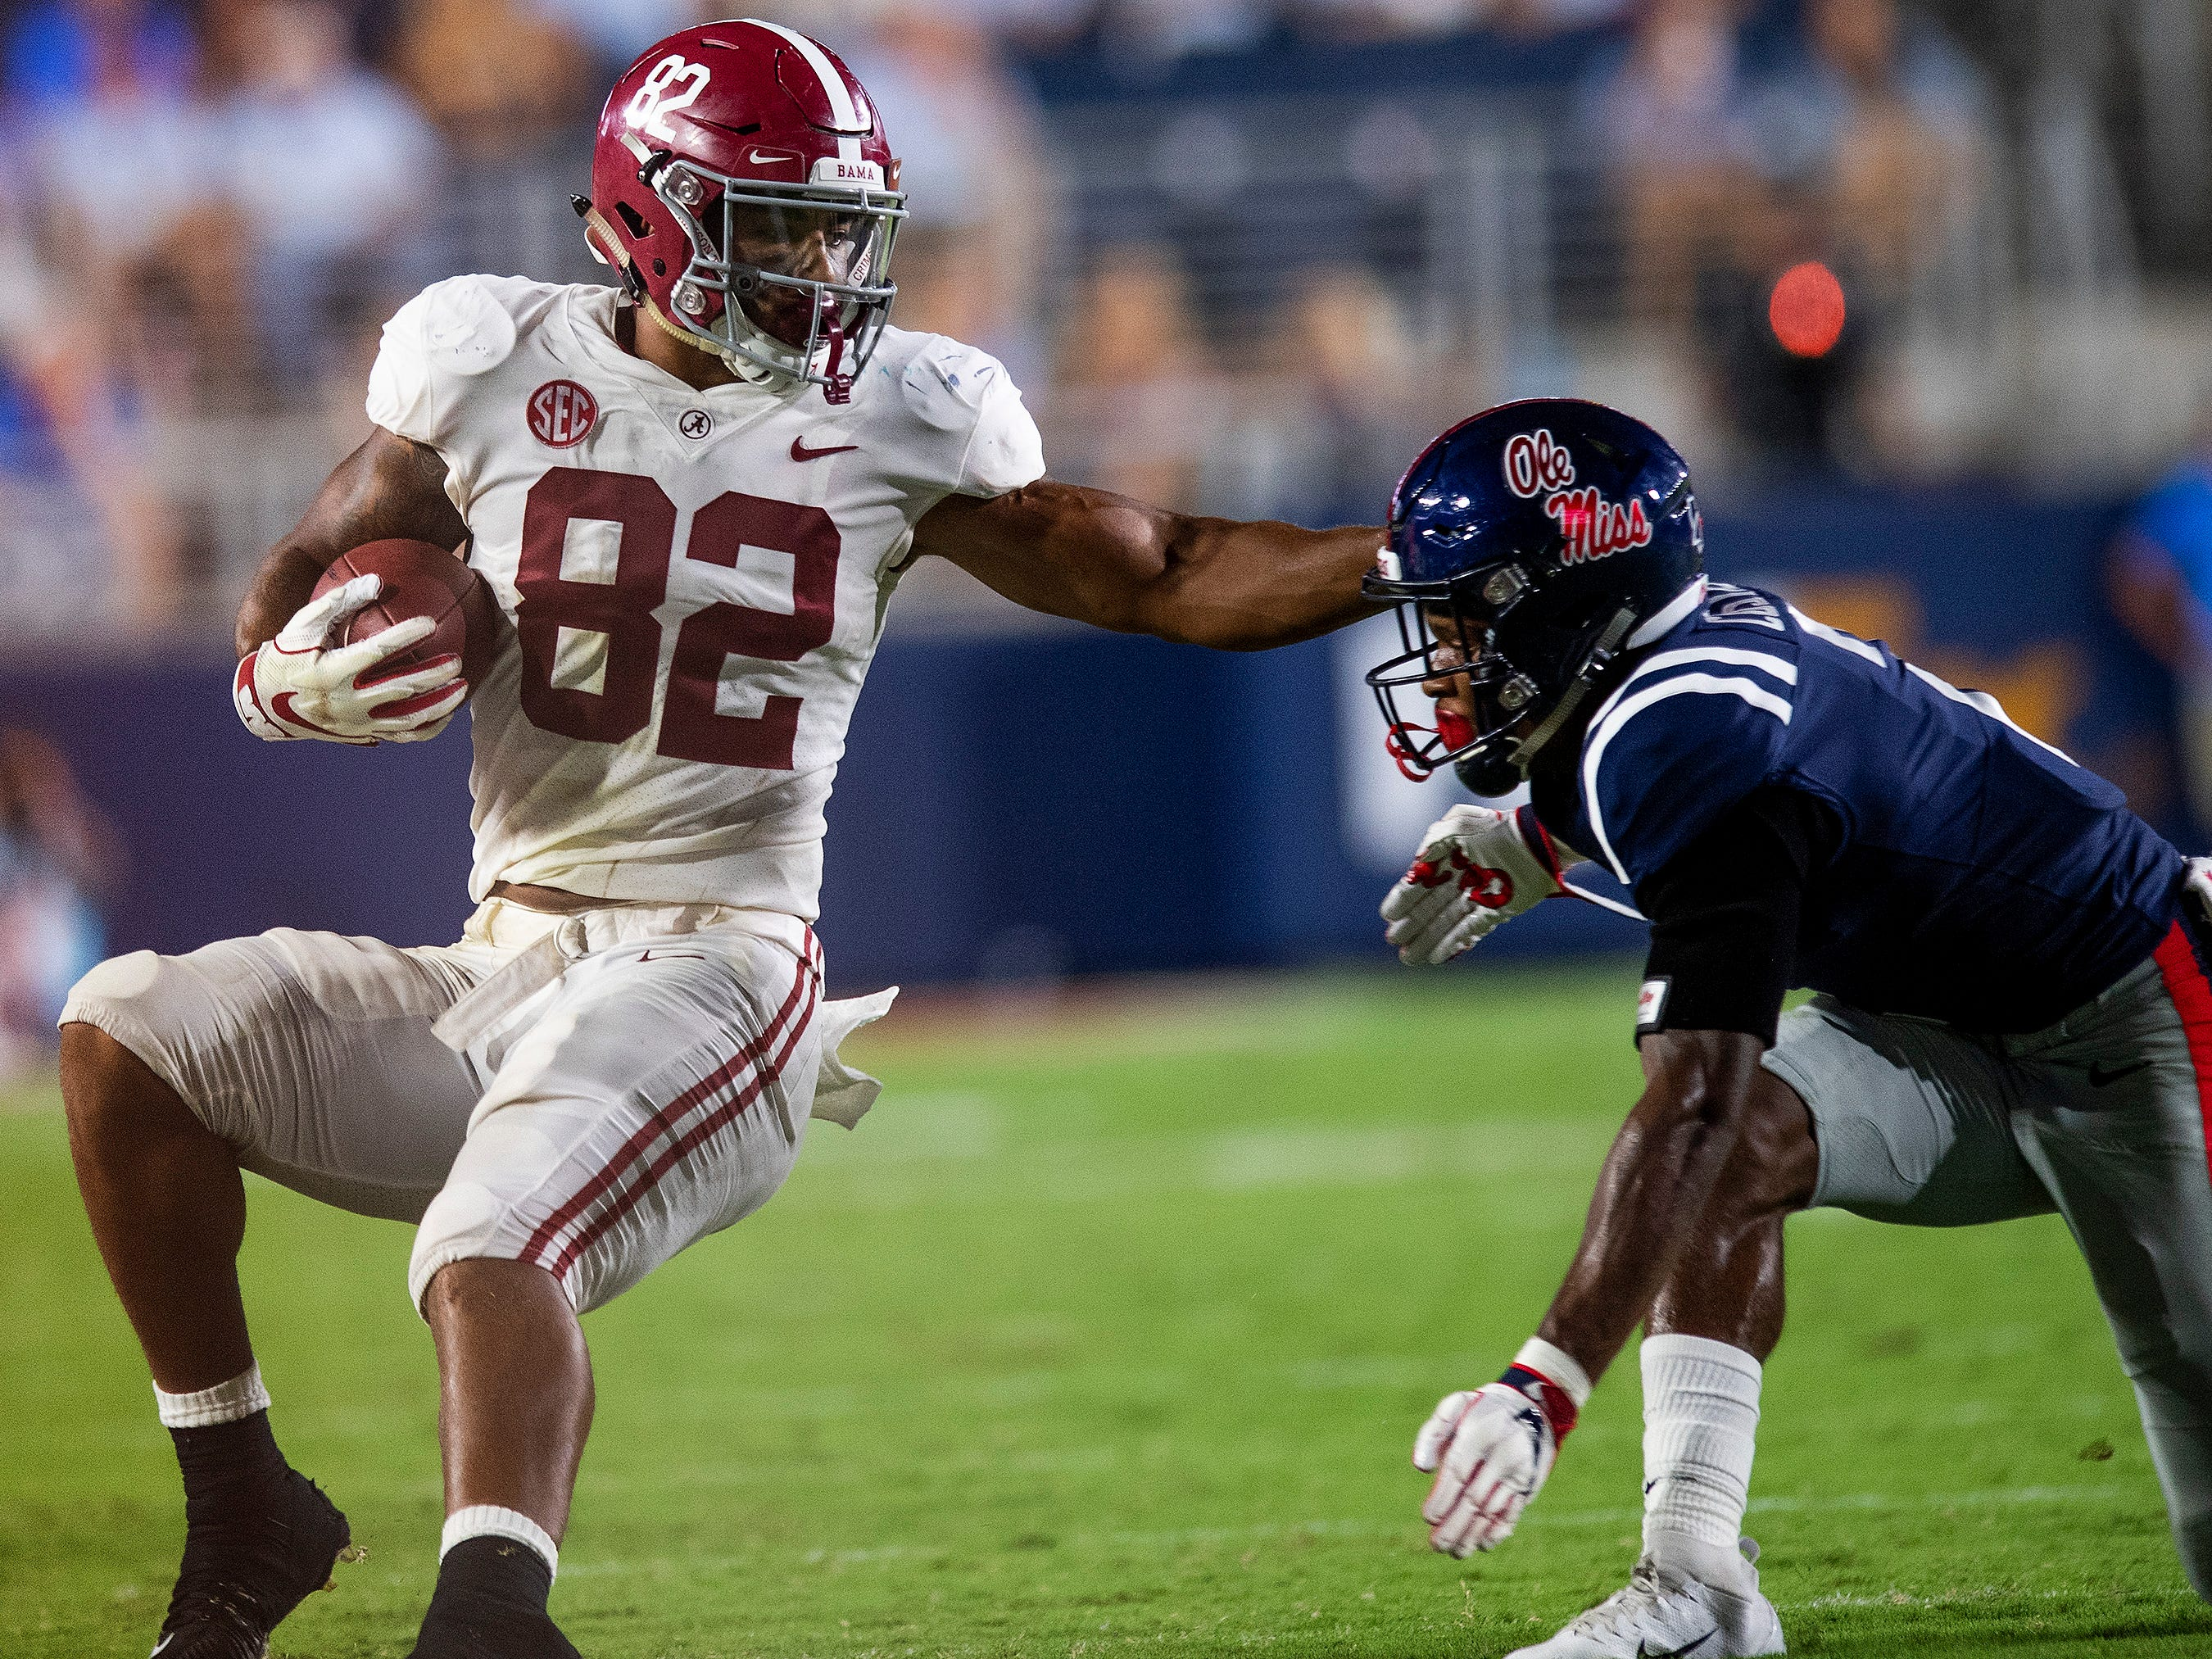 Alabama tight end Irv Smith Jr. (82) is stopped by Ole Miss defensive back Montrell Custis (2) In first half action in Oxford, Ms., on Saturday September 15, 2018.